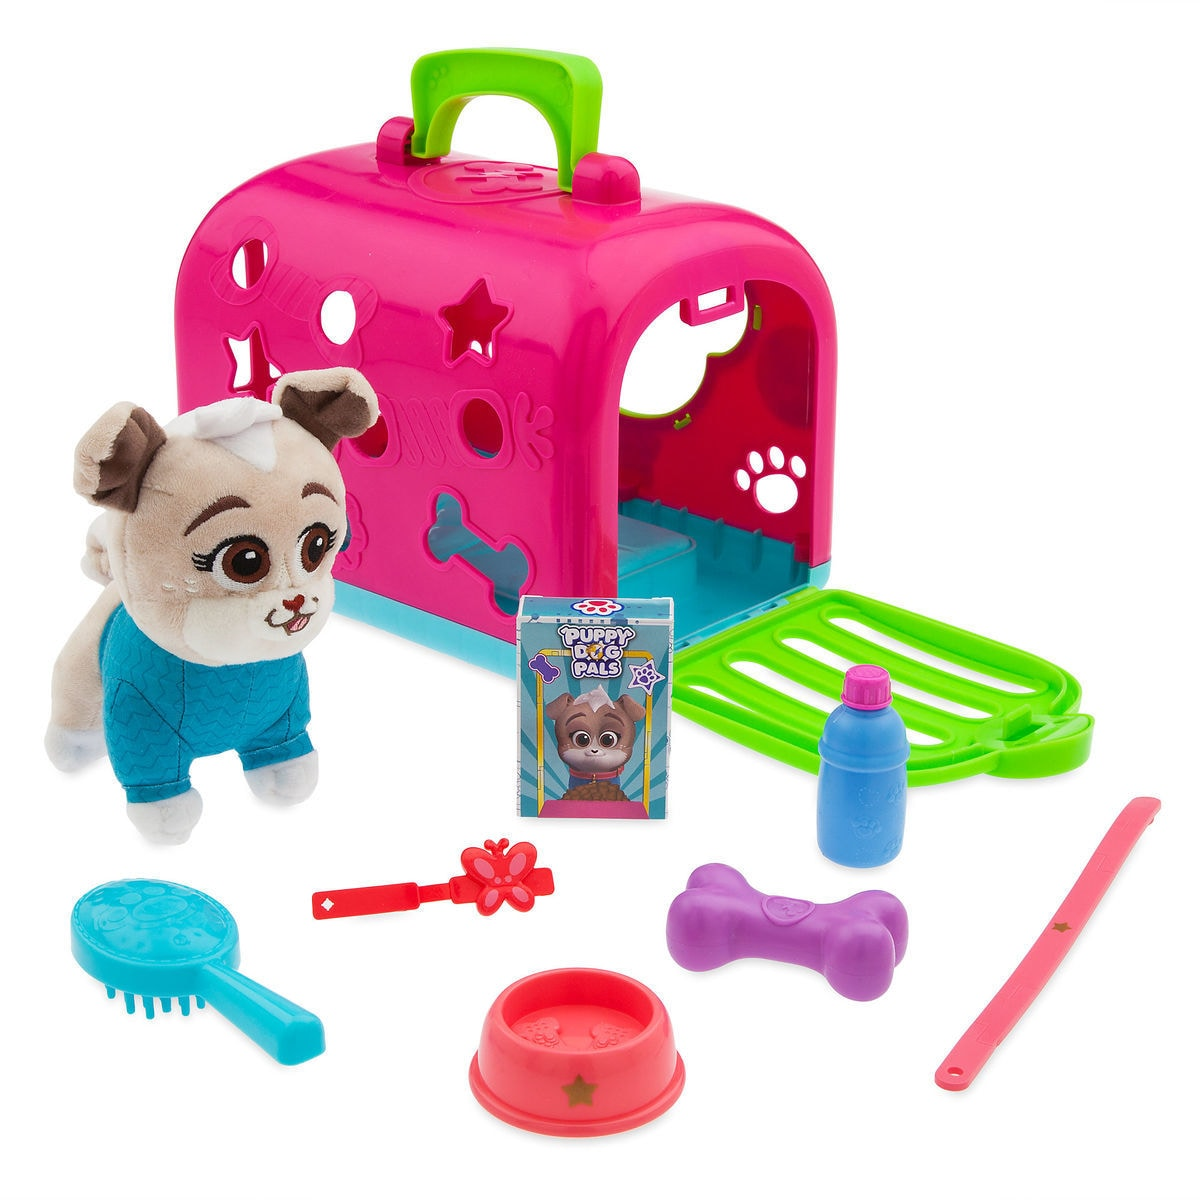 Product Image of Keia Groom and Go Pet Carrier Play Set - Puppy Dog Pals   b9c9fb27ca855